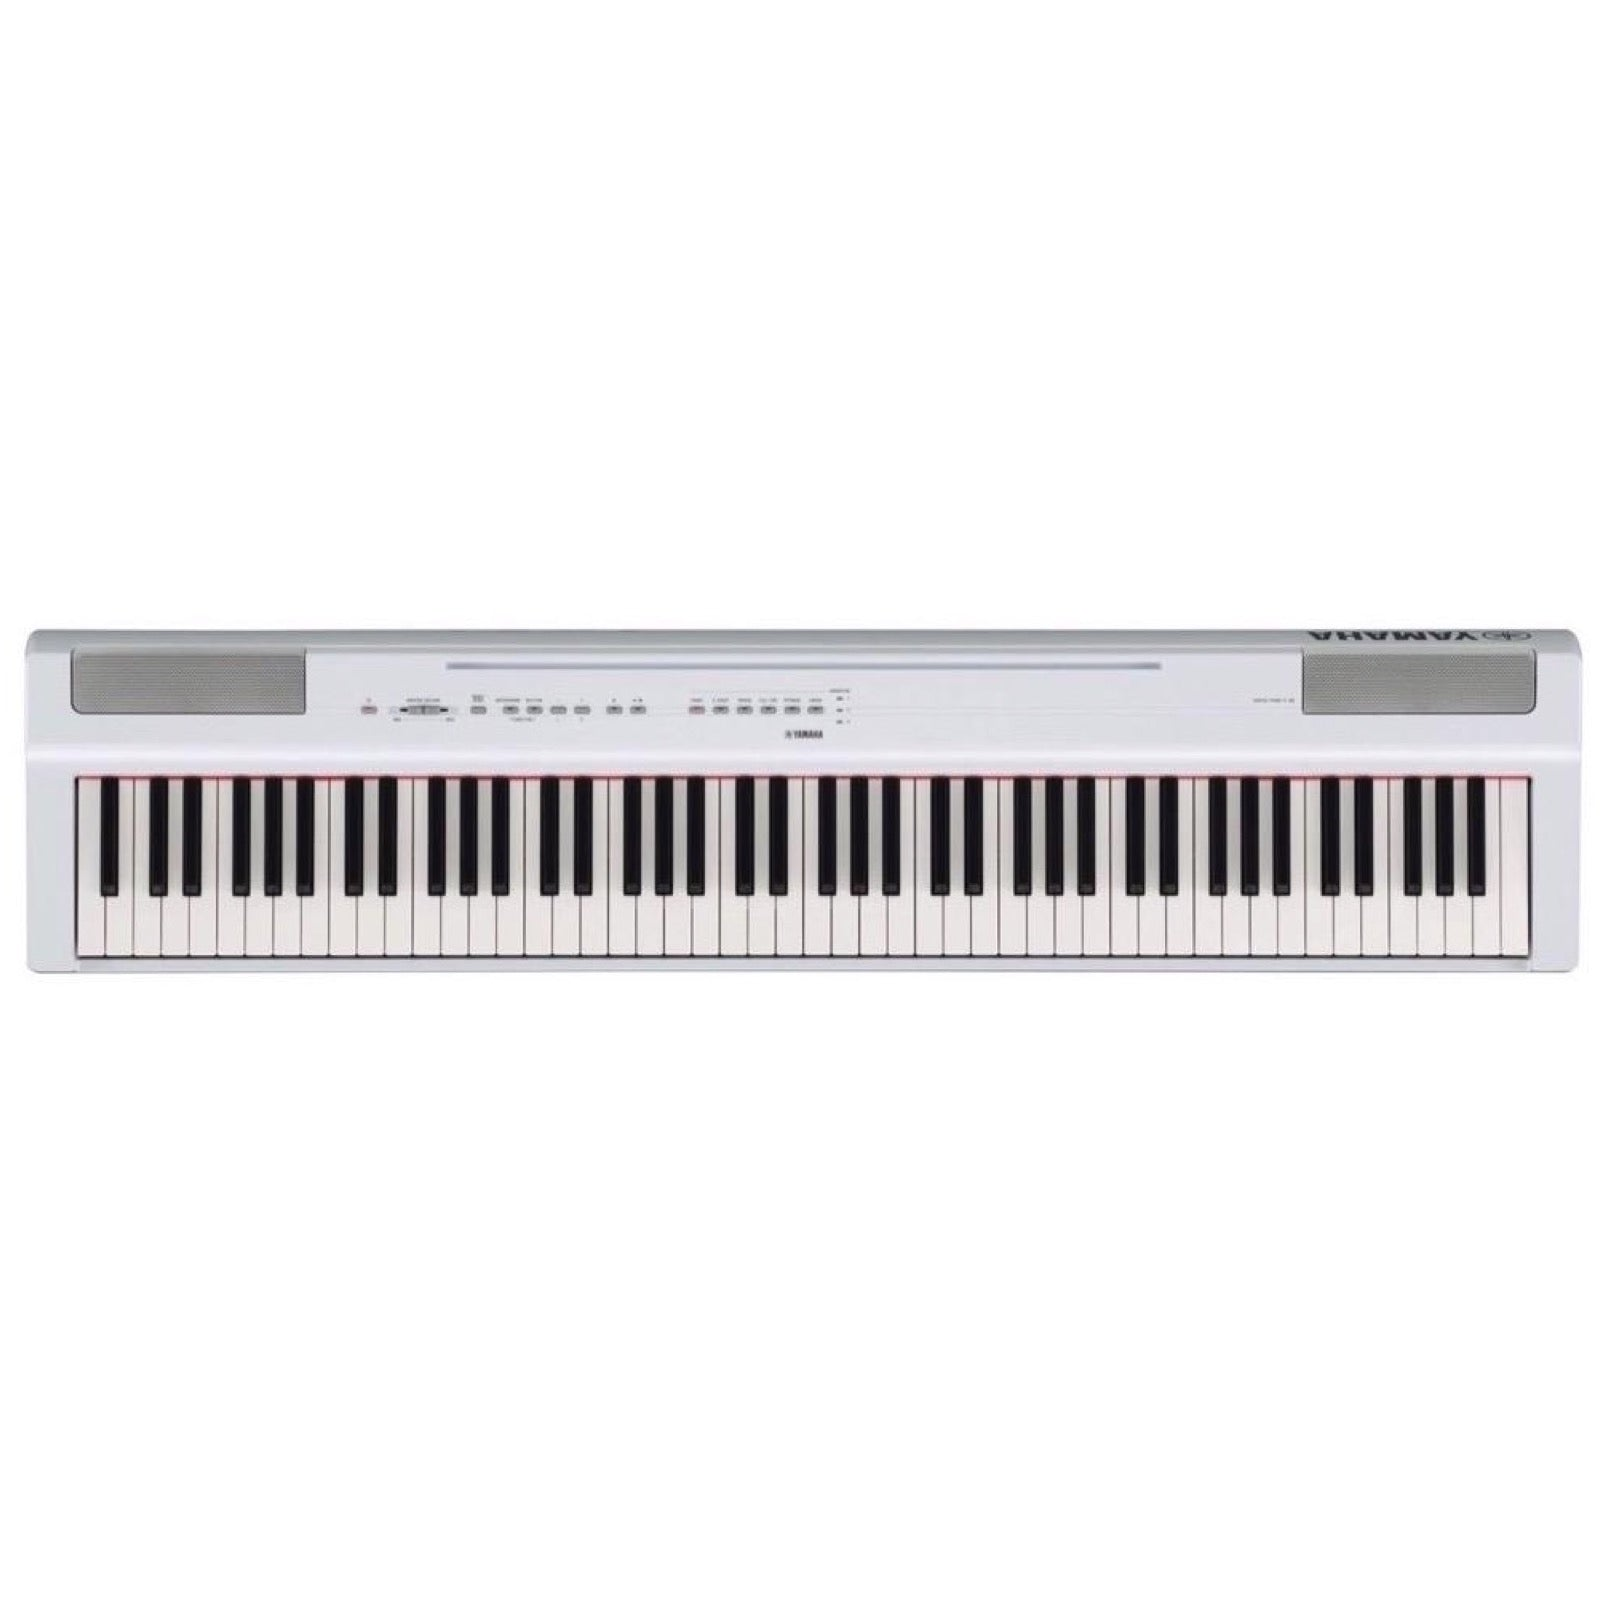 Yamaha P-125 Digital Stage Piano, 88-Key, White